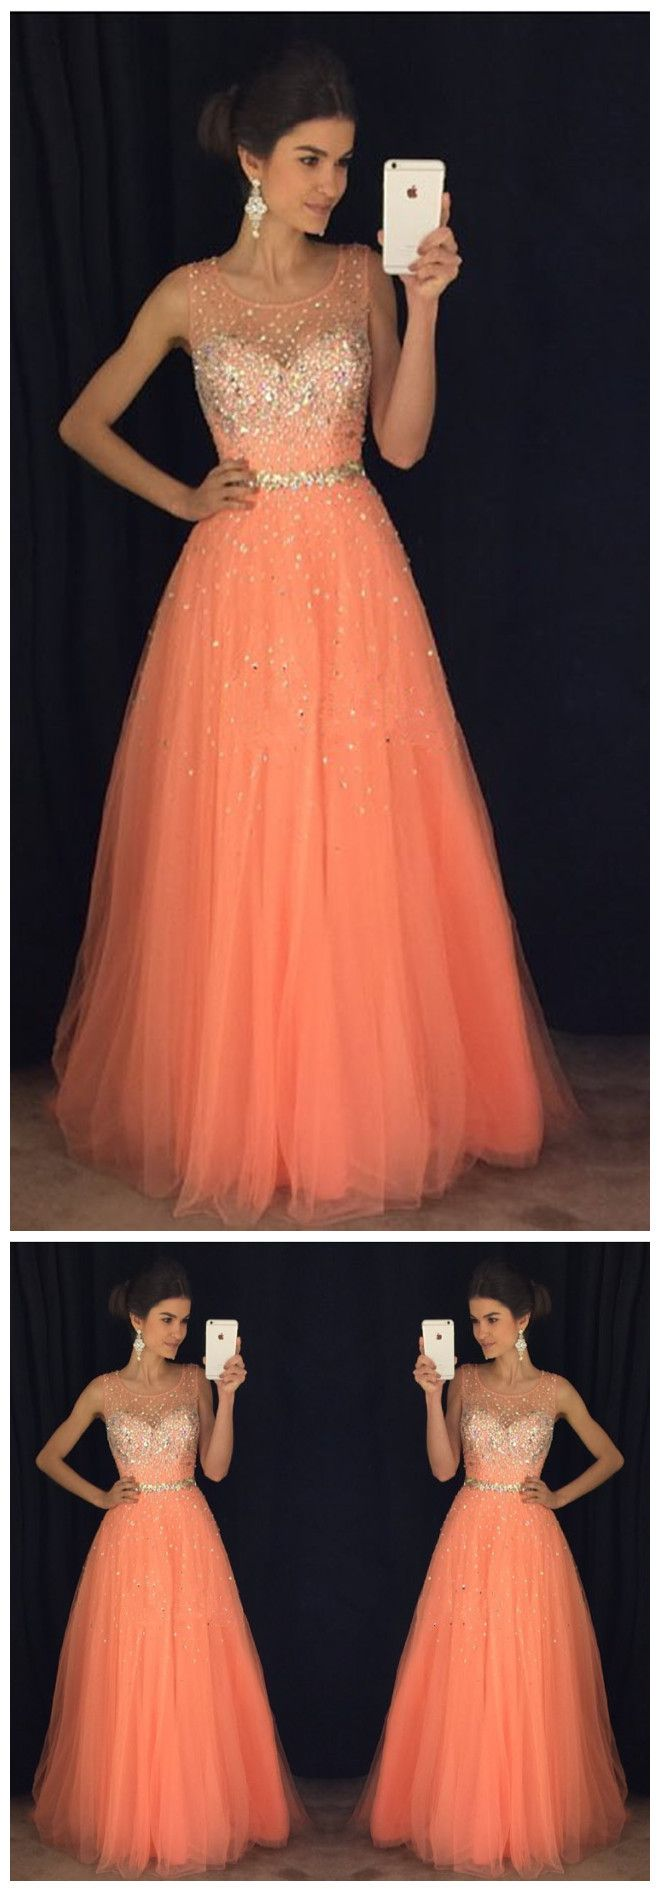 New Arrival Prom Dress,Modest Prom Dress,coral prom dresses,cap